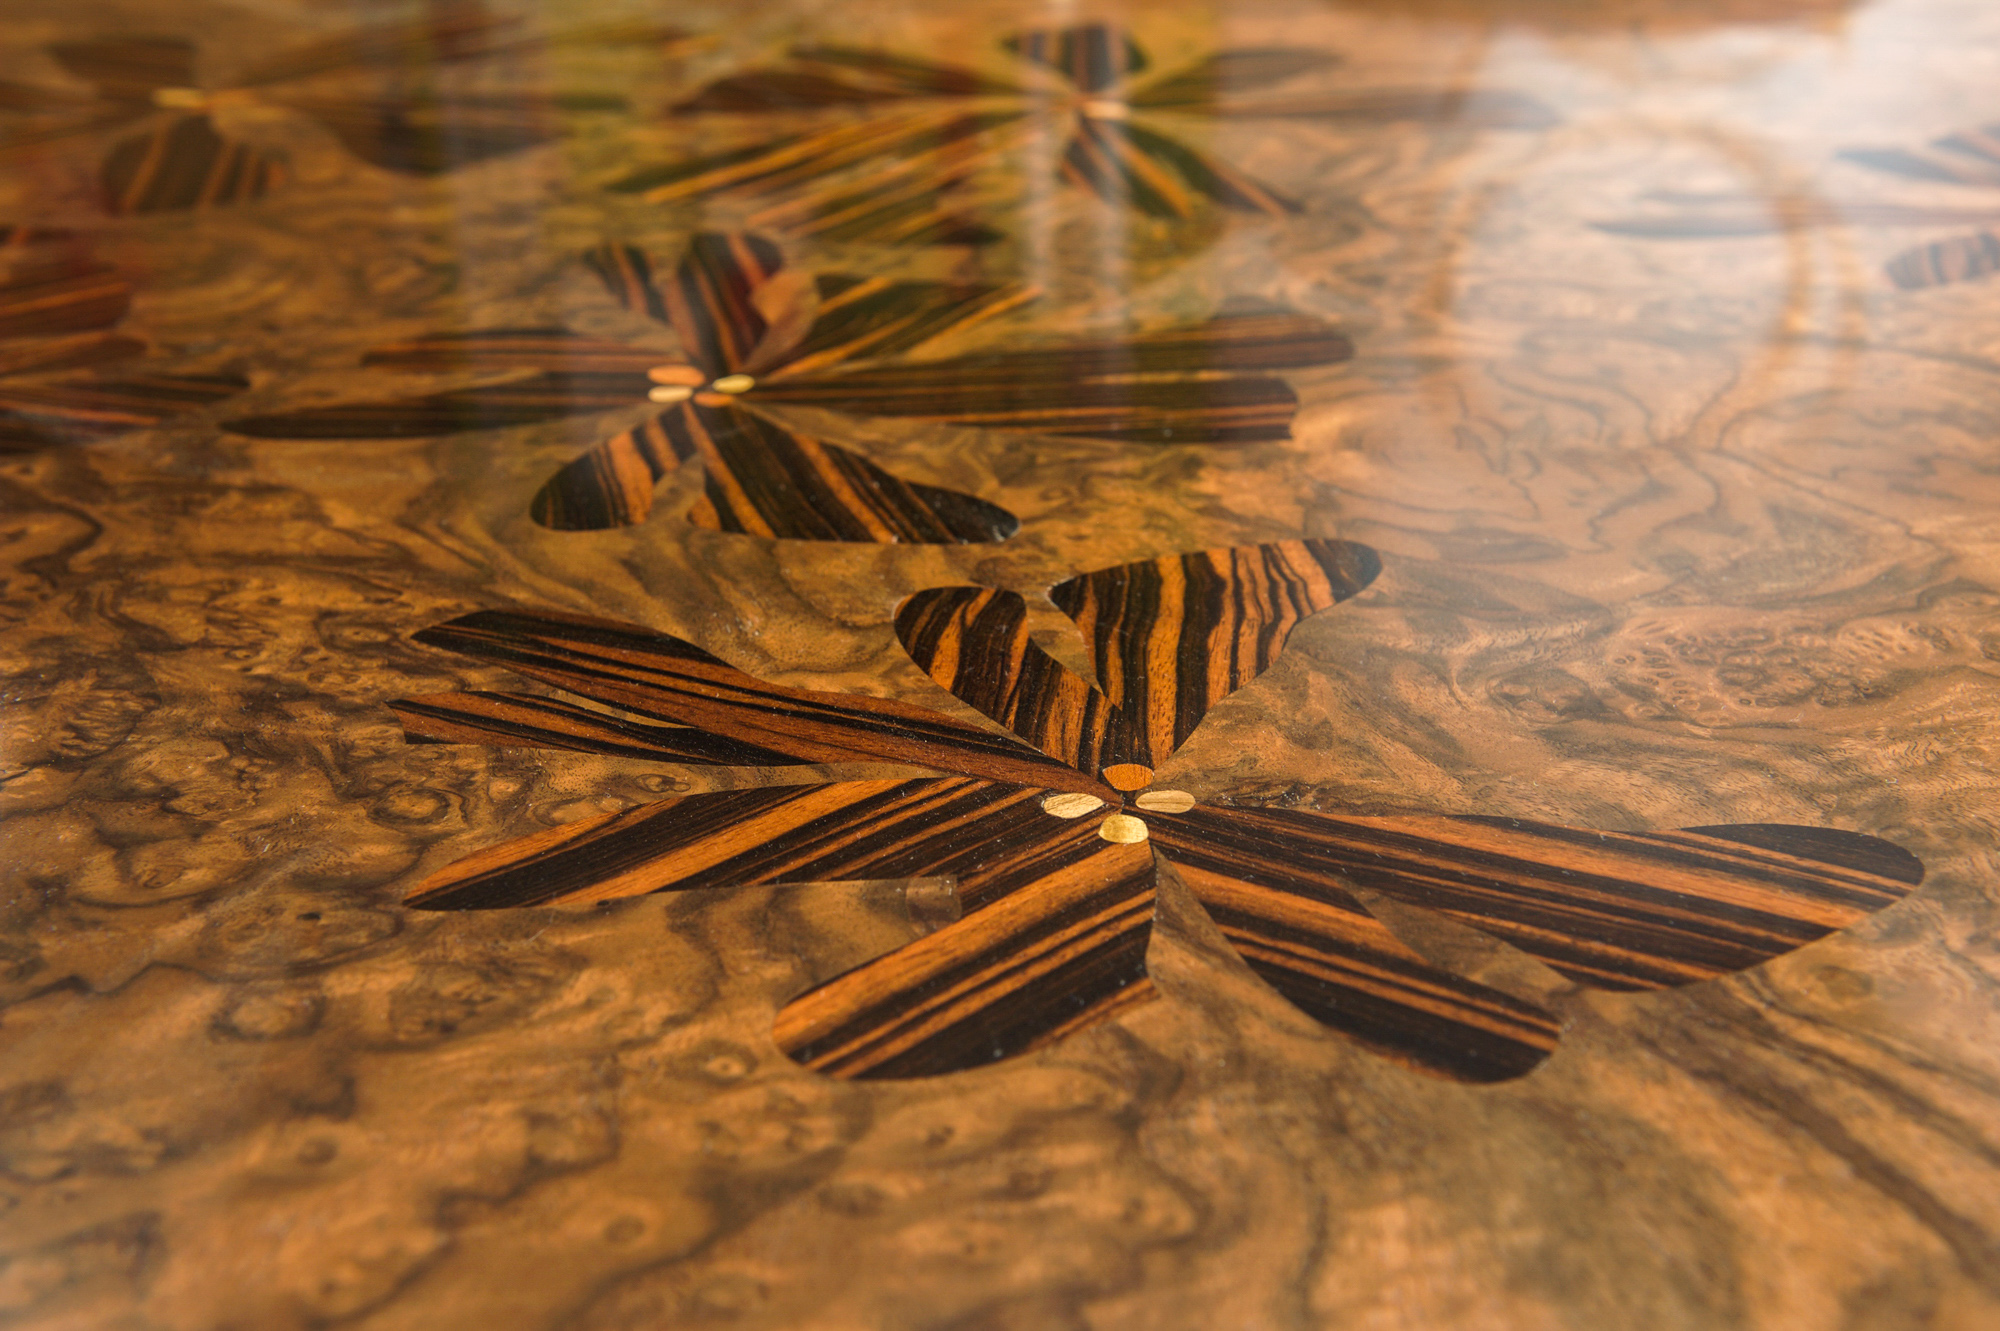 inlayed flowers in wood in a table surface, french polished.